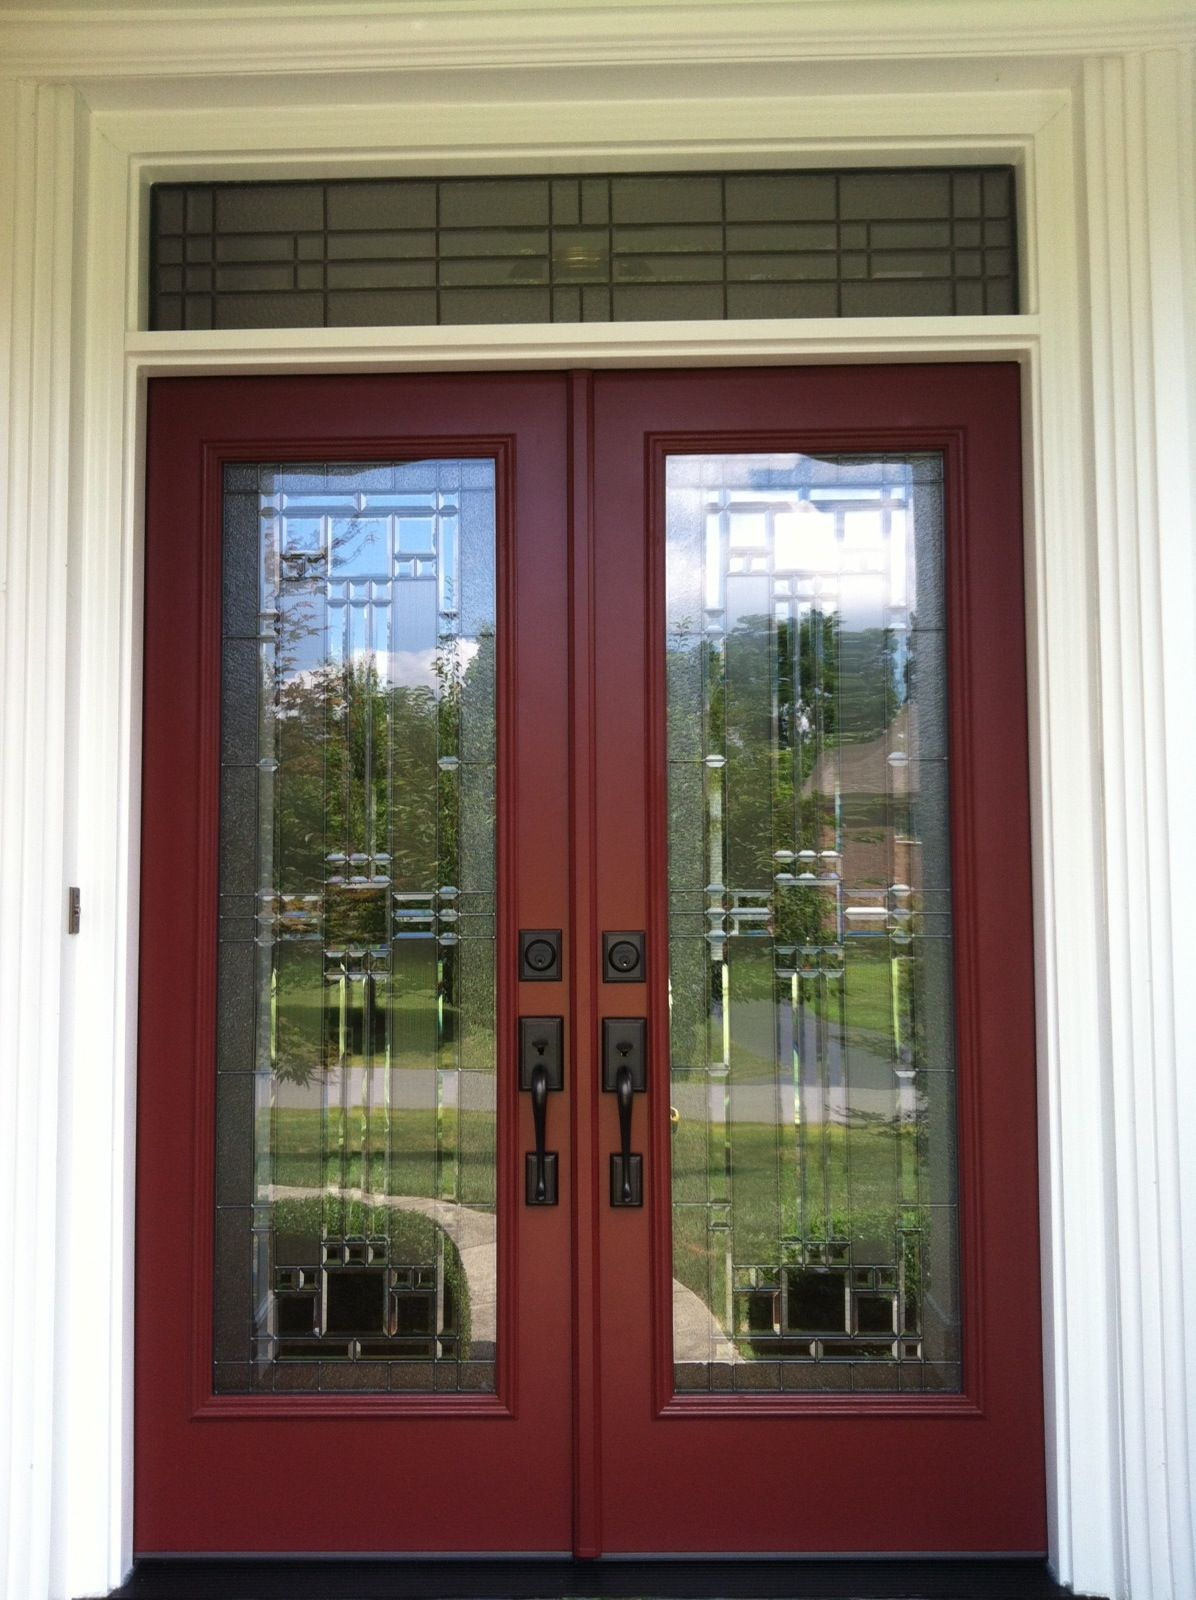 Provia signet french entry door system with full light for Full glass french doors